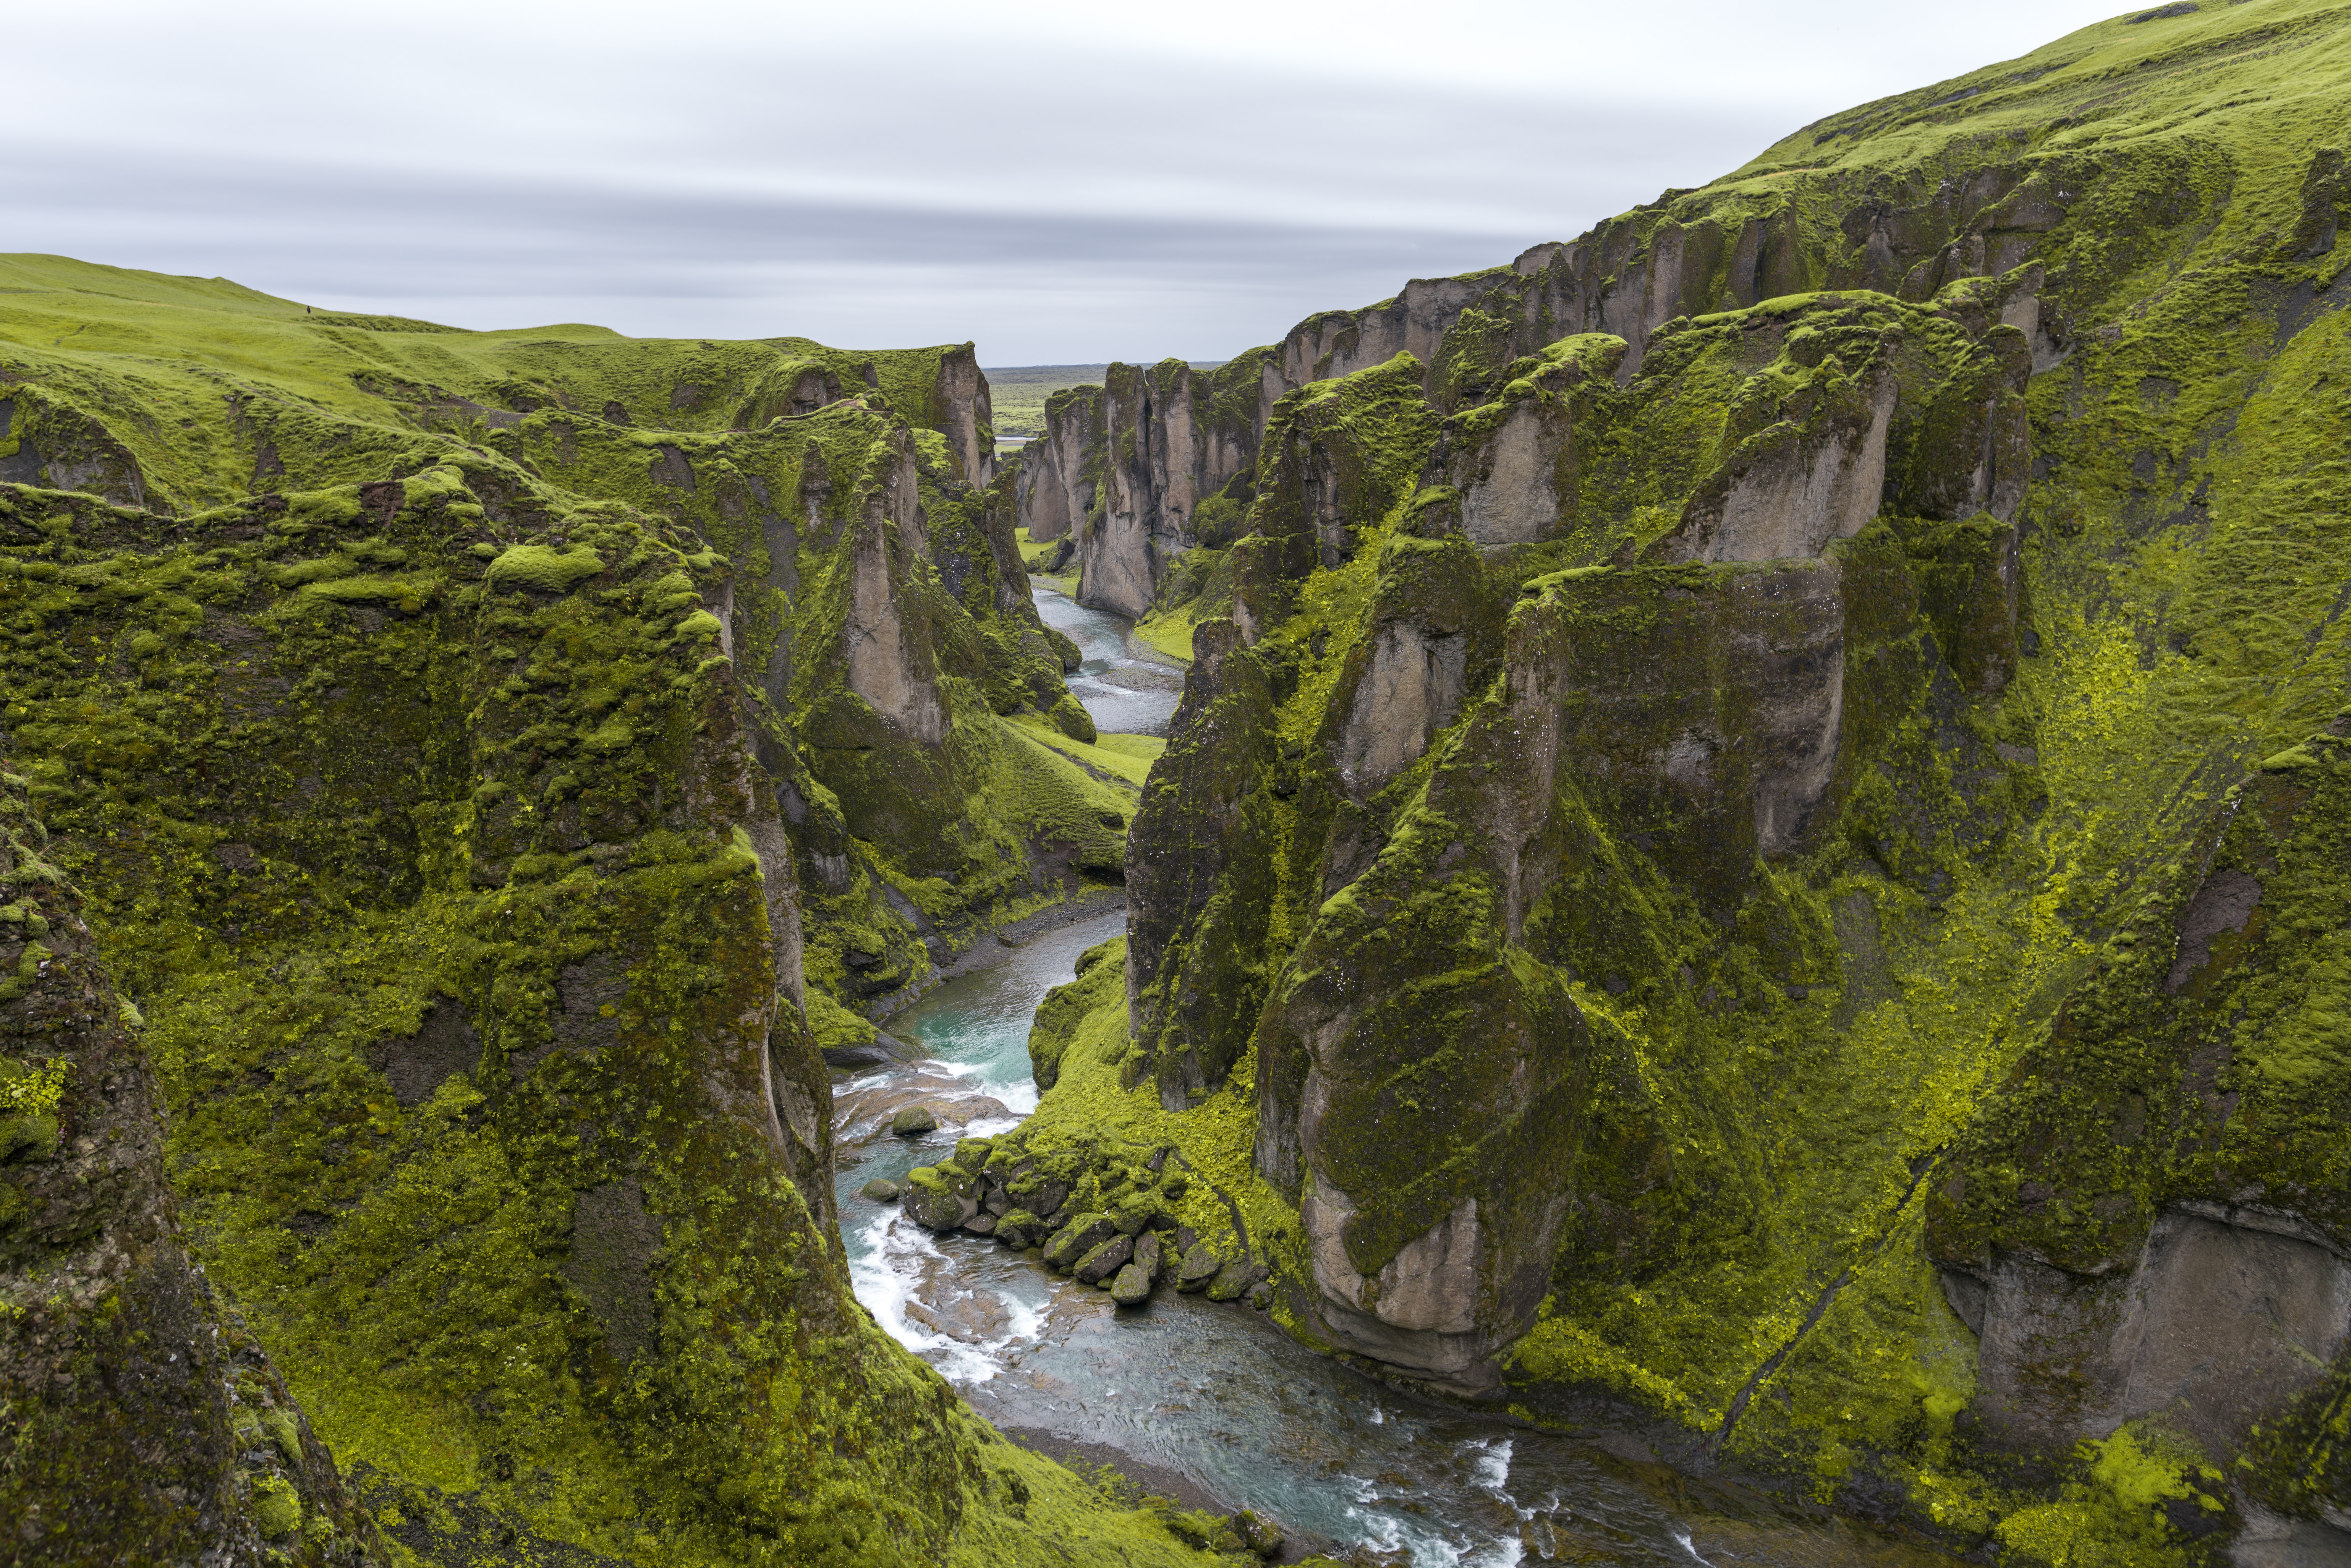 green mossy cliff with river in the middle